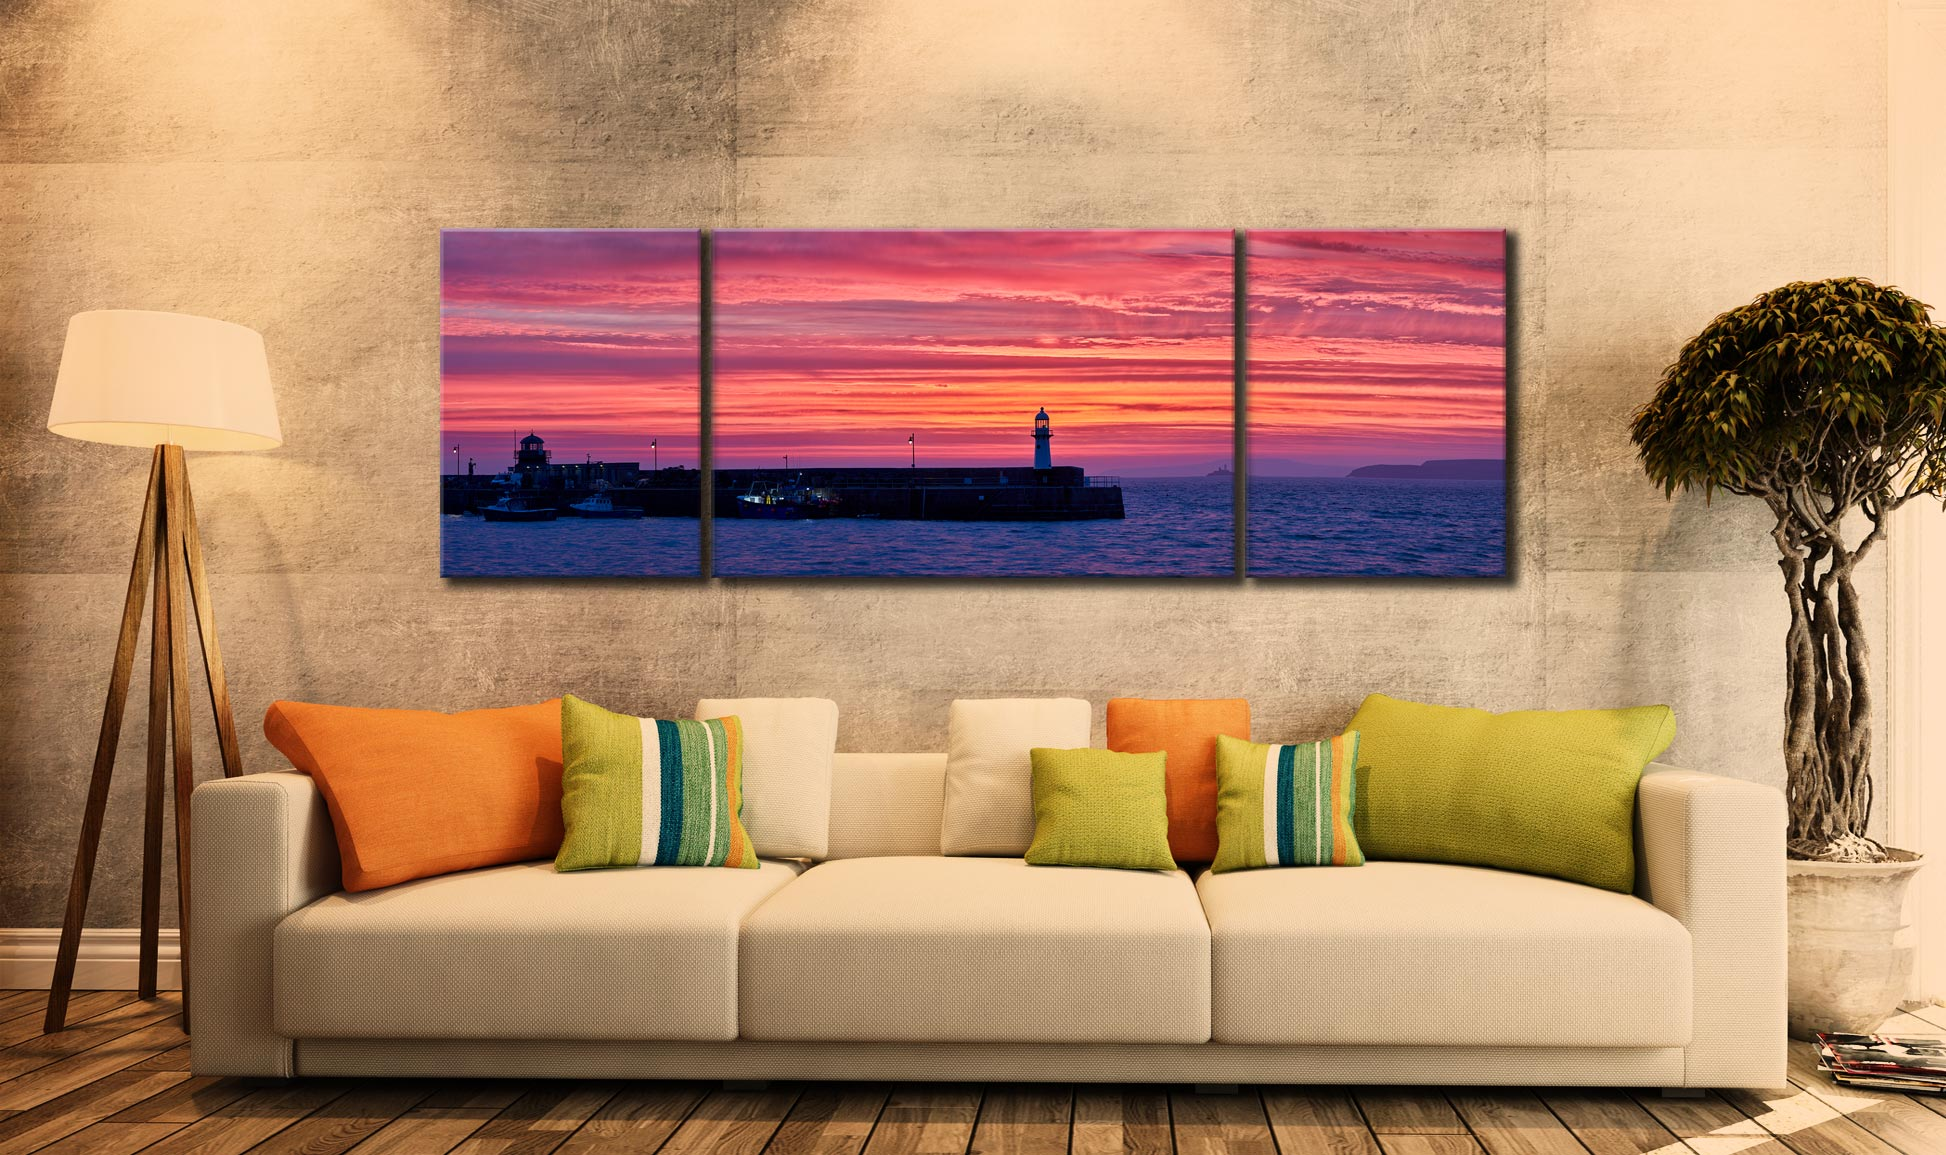 Approaching Dawn Over St Ives - 3 Panel Wide Mid Canvas on Wall